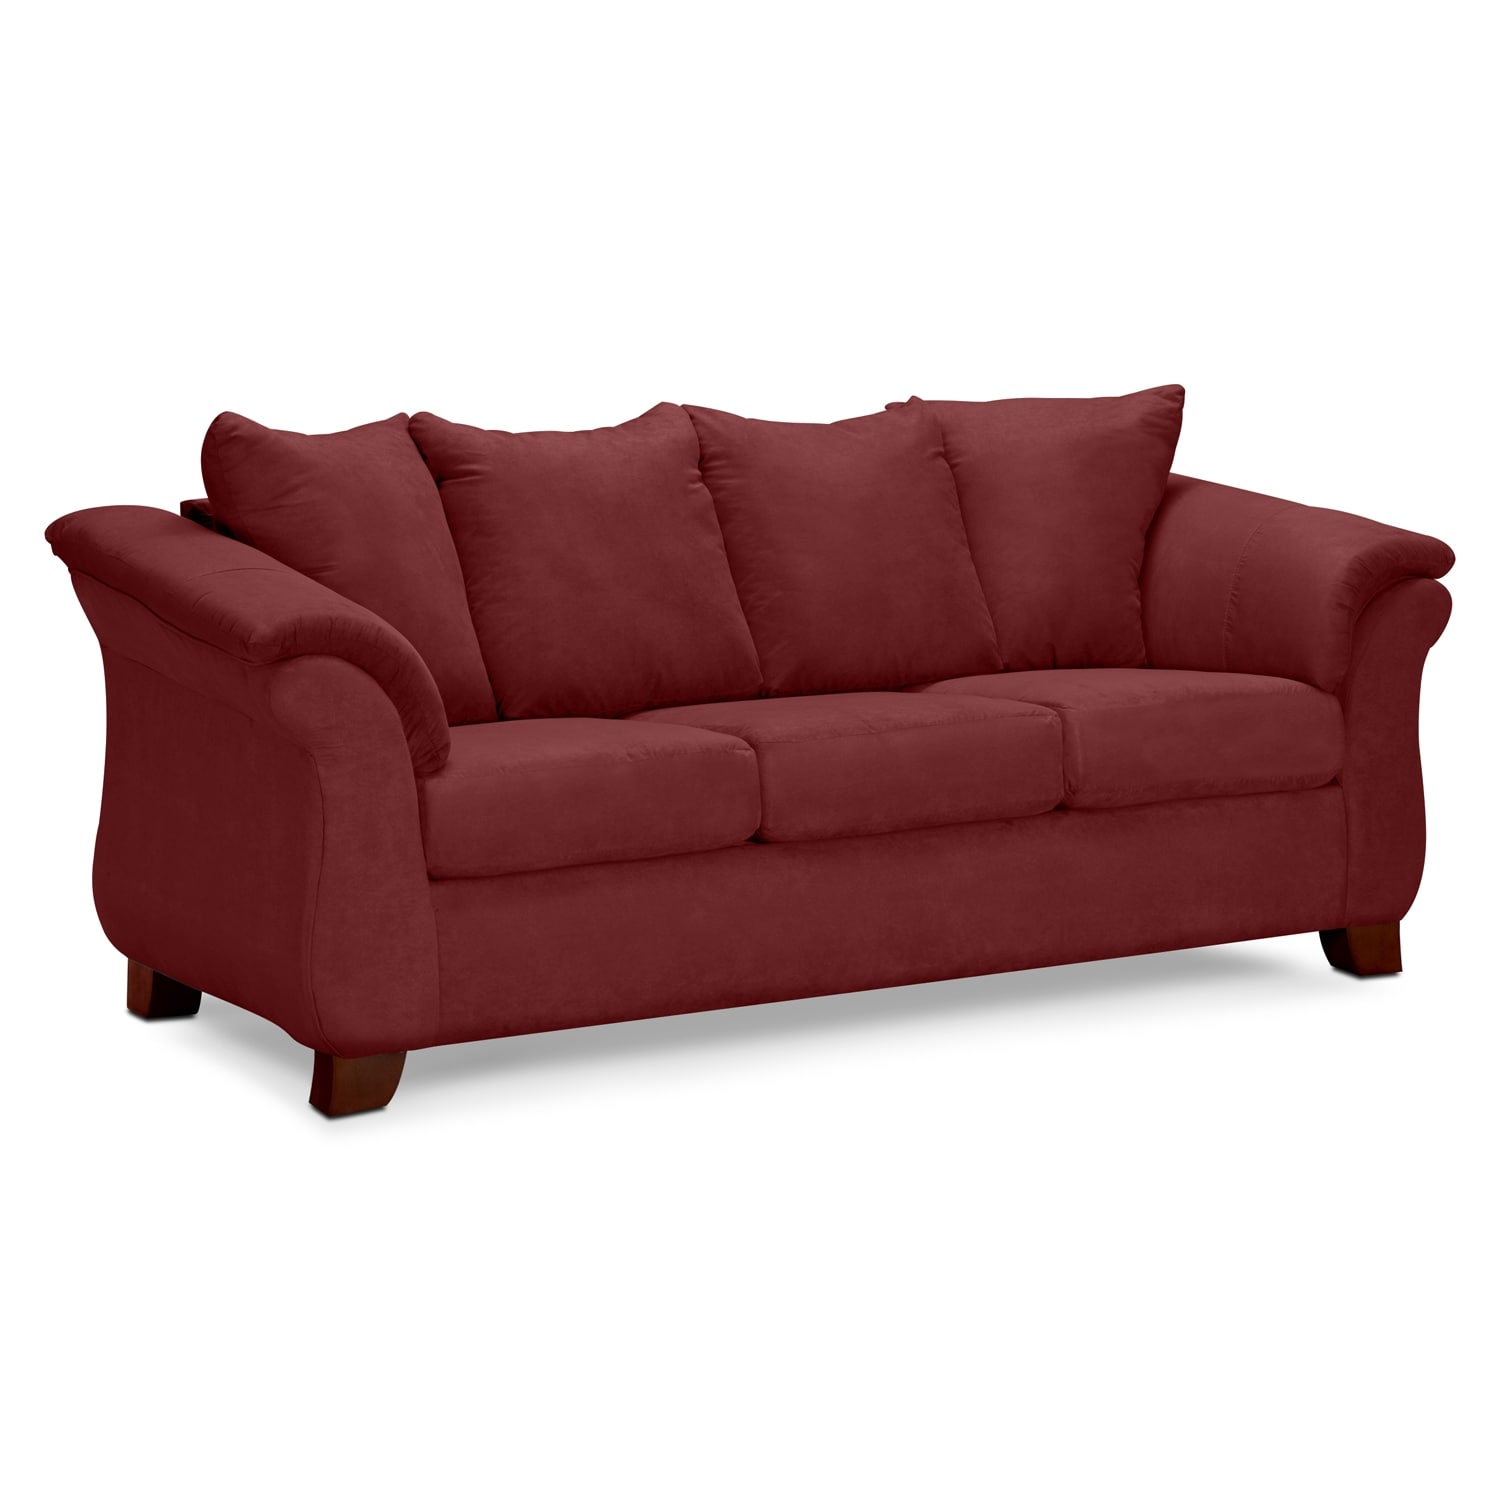 Adrian red upholstery sofa value city furniture for Furniture upholstery